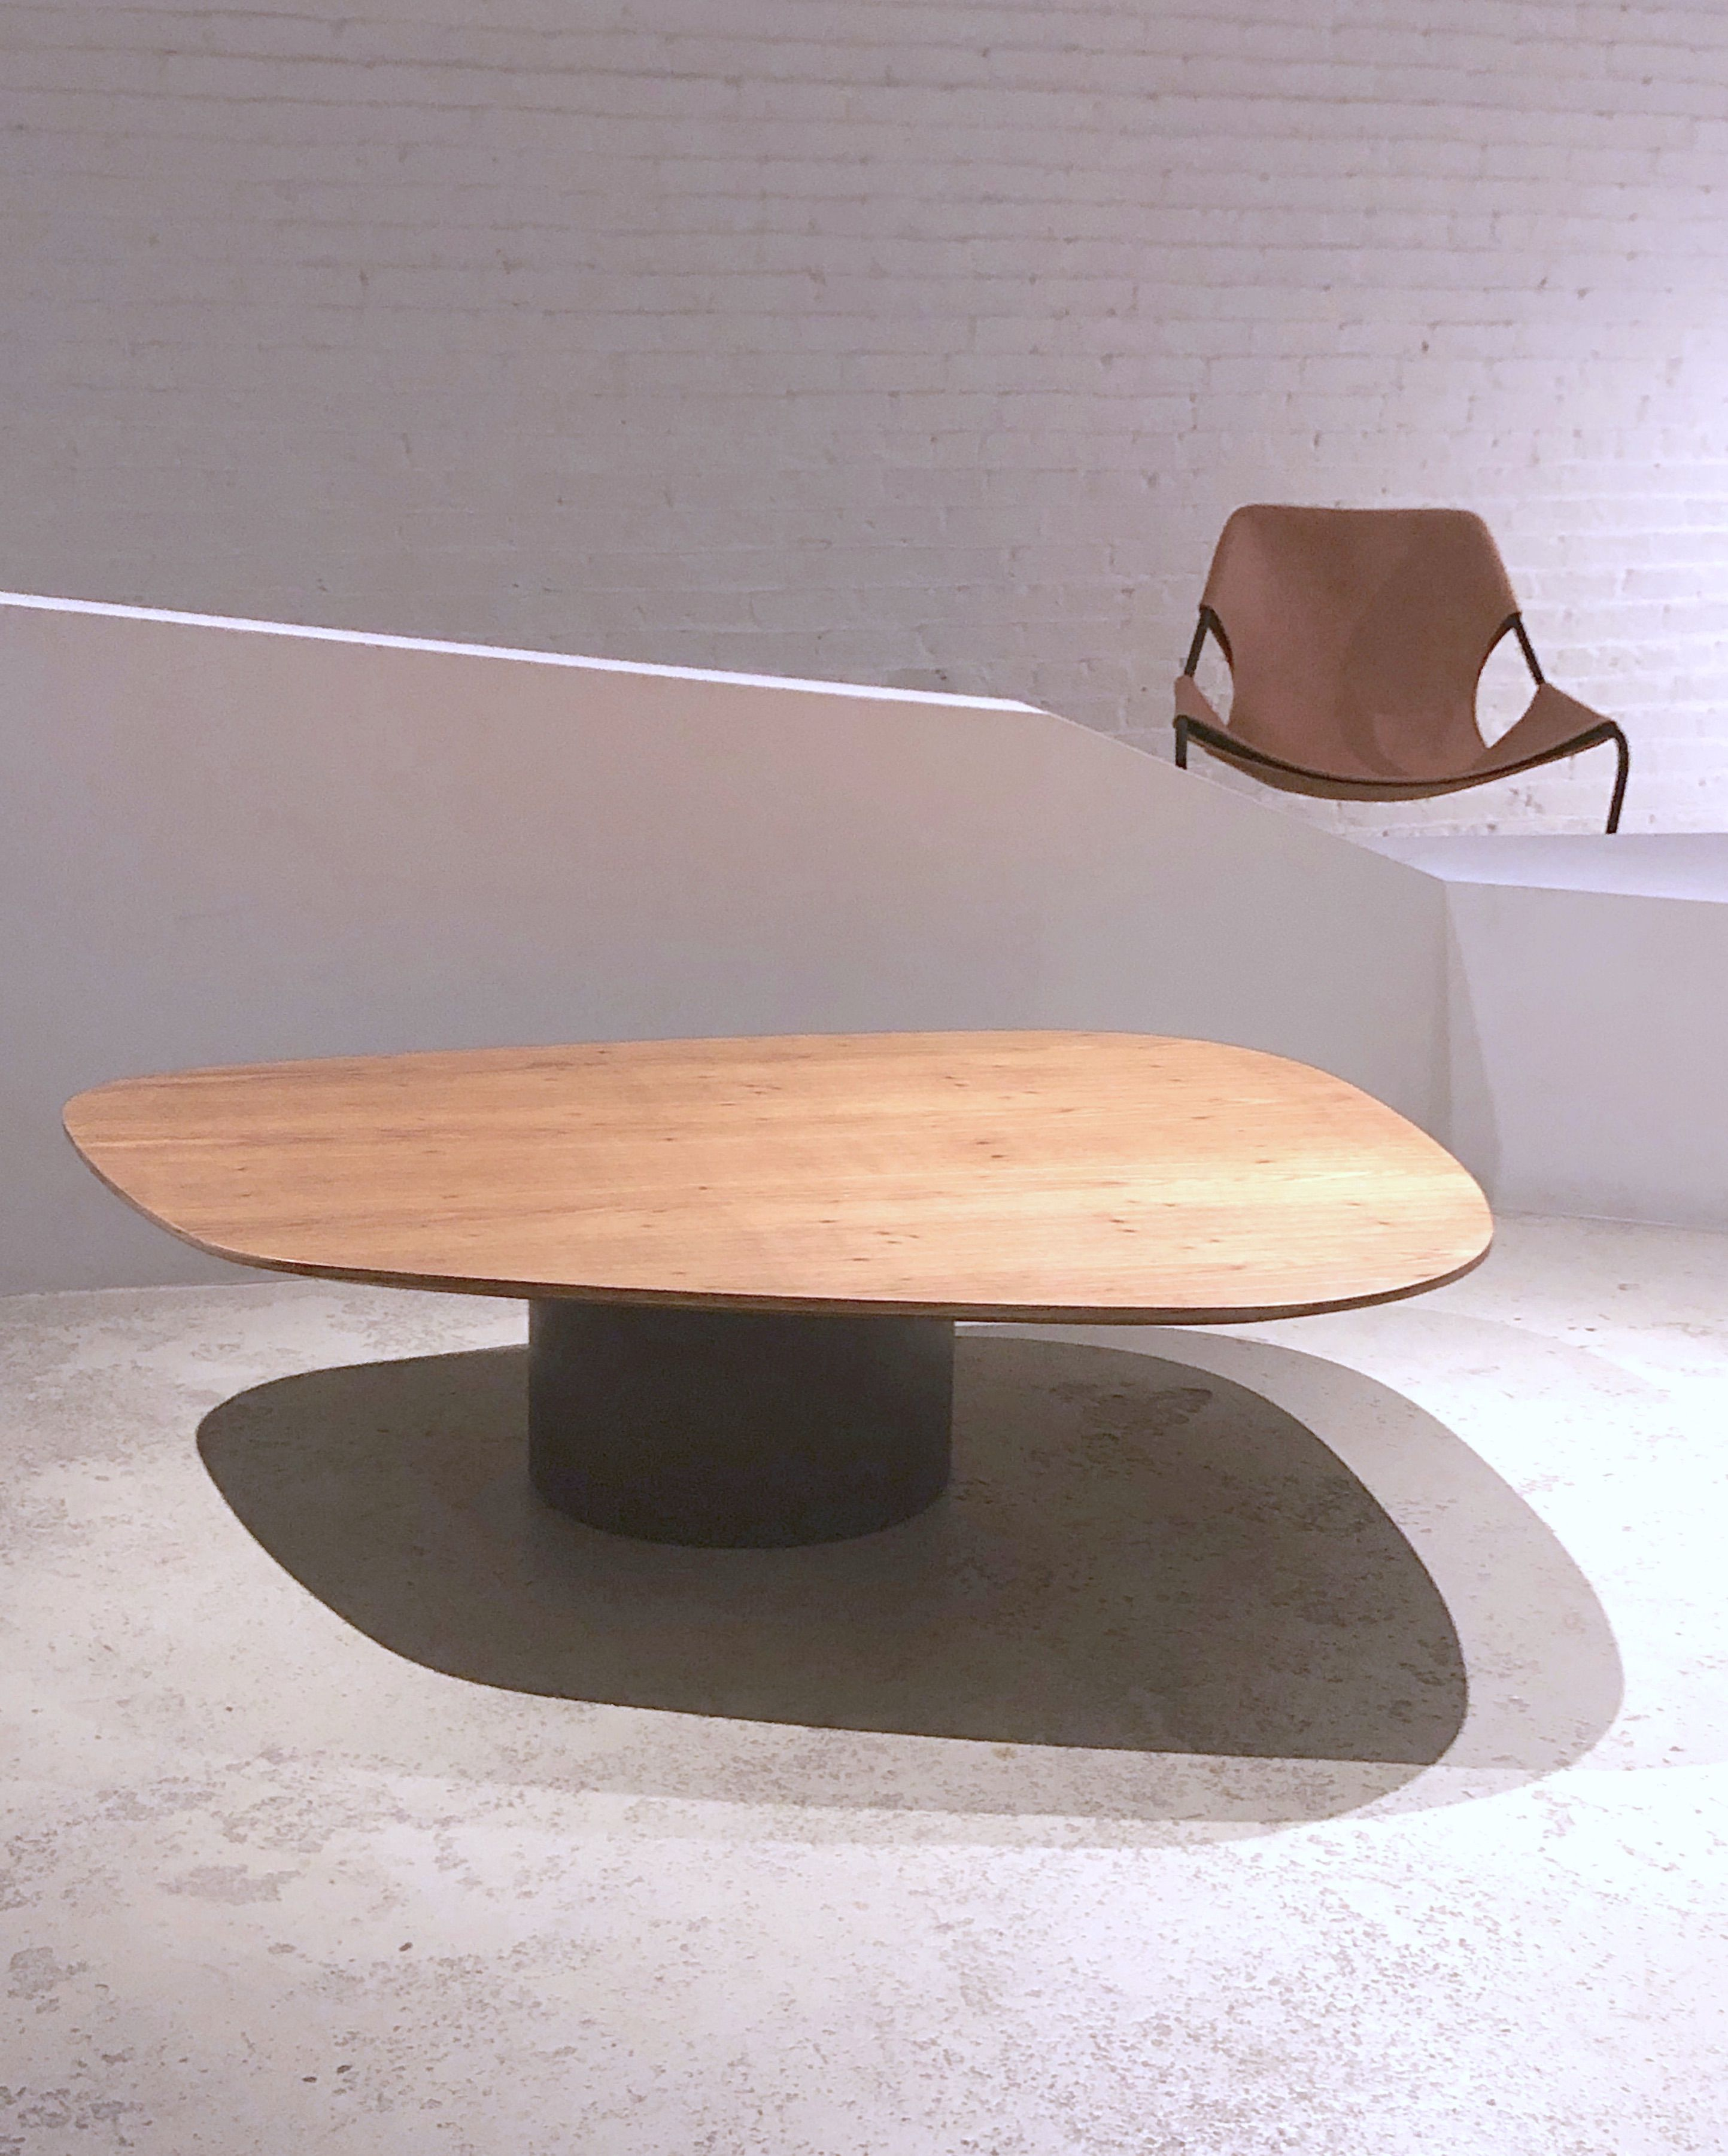 Amorfa Coffee Table By Arthur Casas Available At Espasso Contemporary And Midcentury Modern Brazilian Design Table Coffee Table Midcentury Modern [ 3603 x 2887 Pixel ]